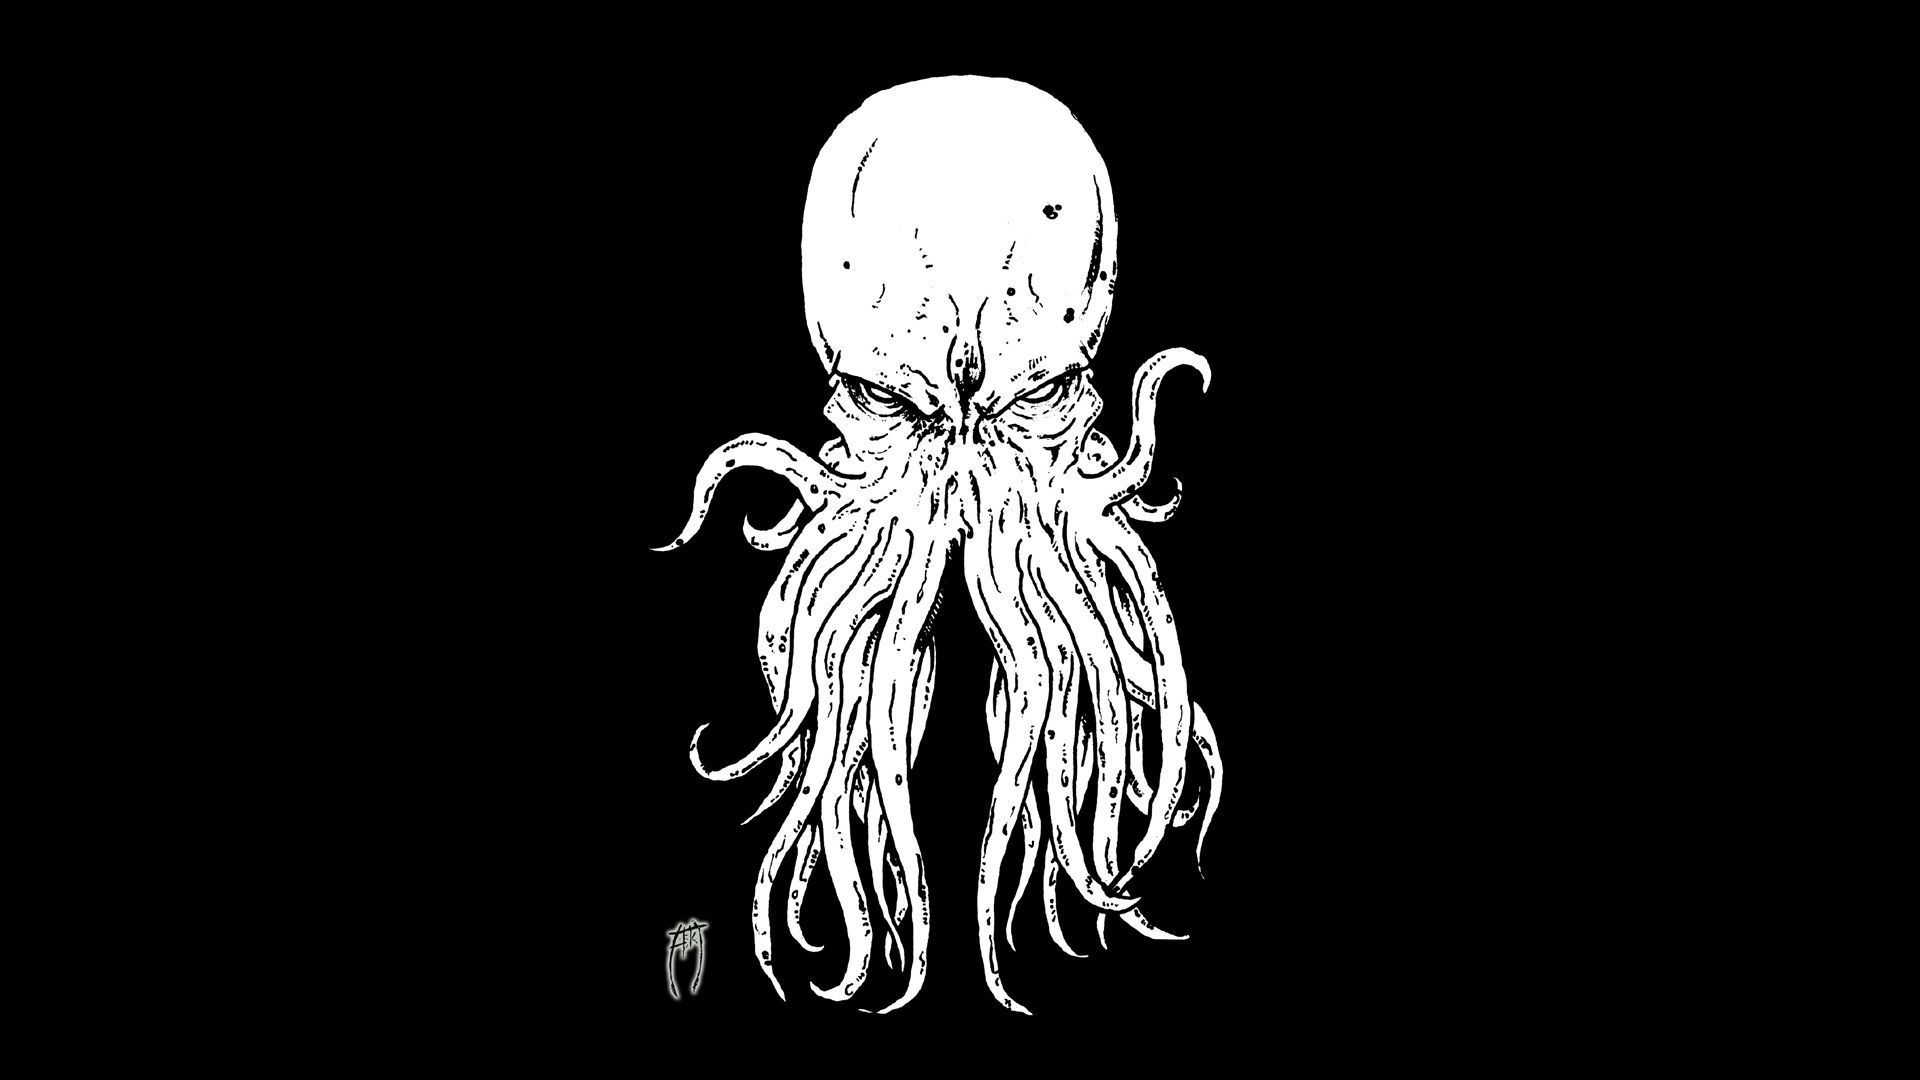 Download Free Cthulhu Wallpapers For Your Mobile Phone Most Cthulhu Cthulhu Mythos Tentacle Art